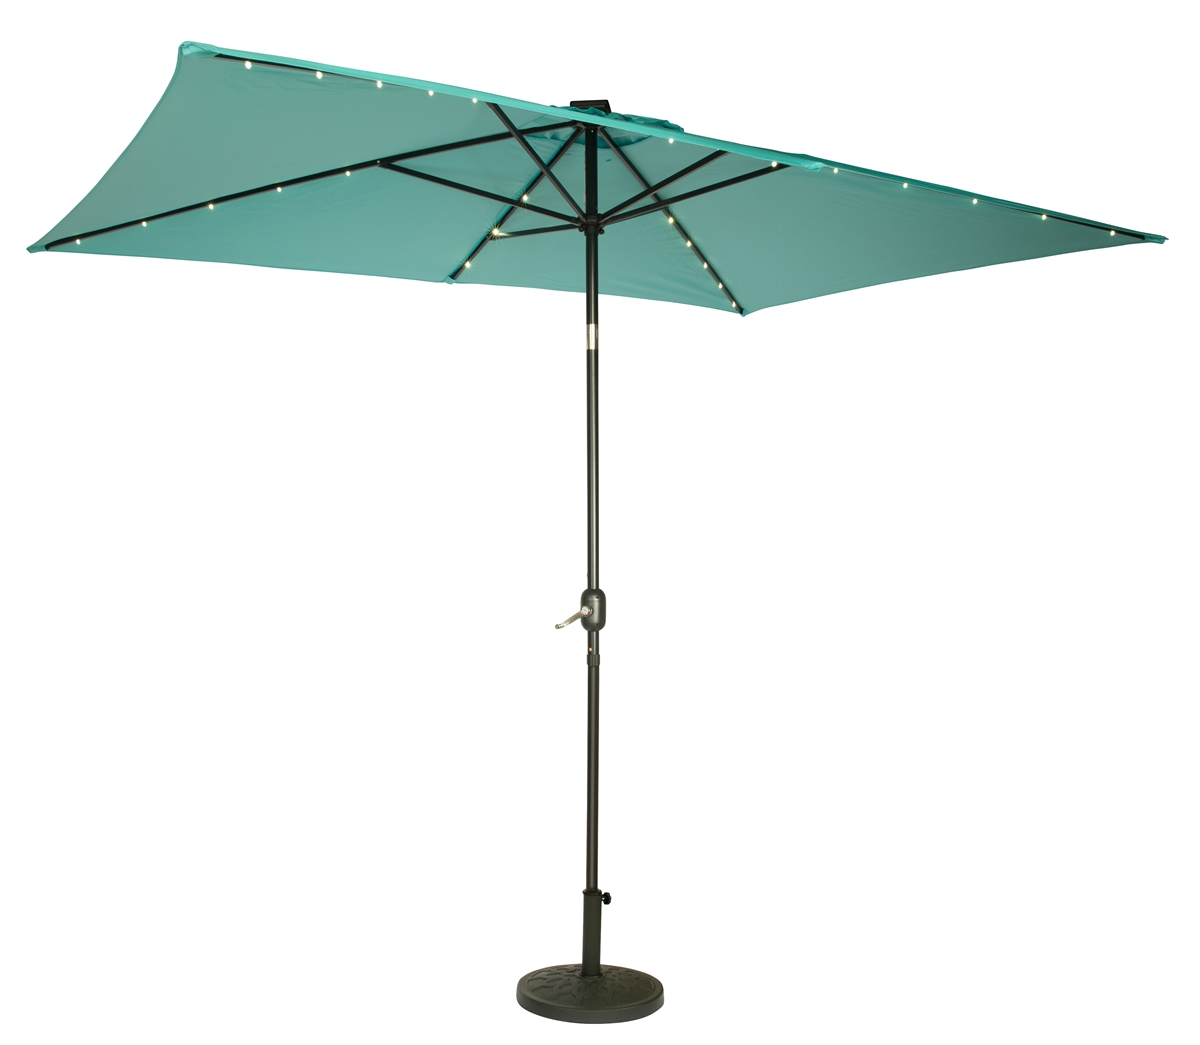 10 x 65 Rectangular Solar Powered LED Lighted Patio Umbrella by